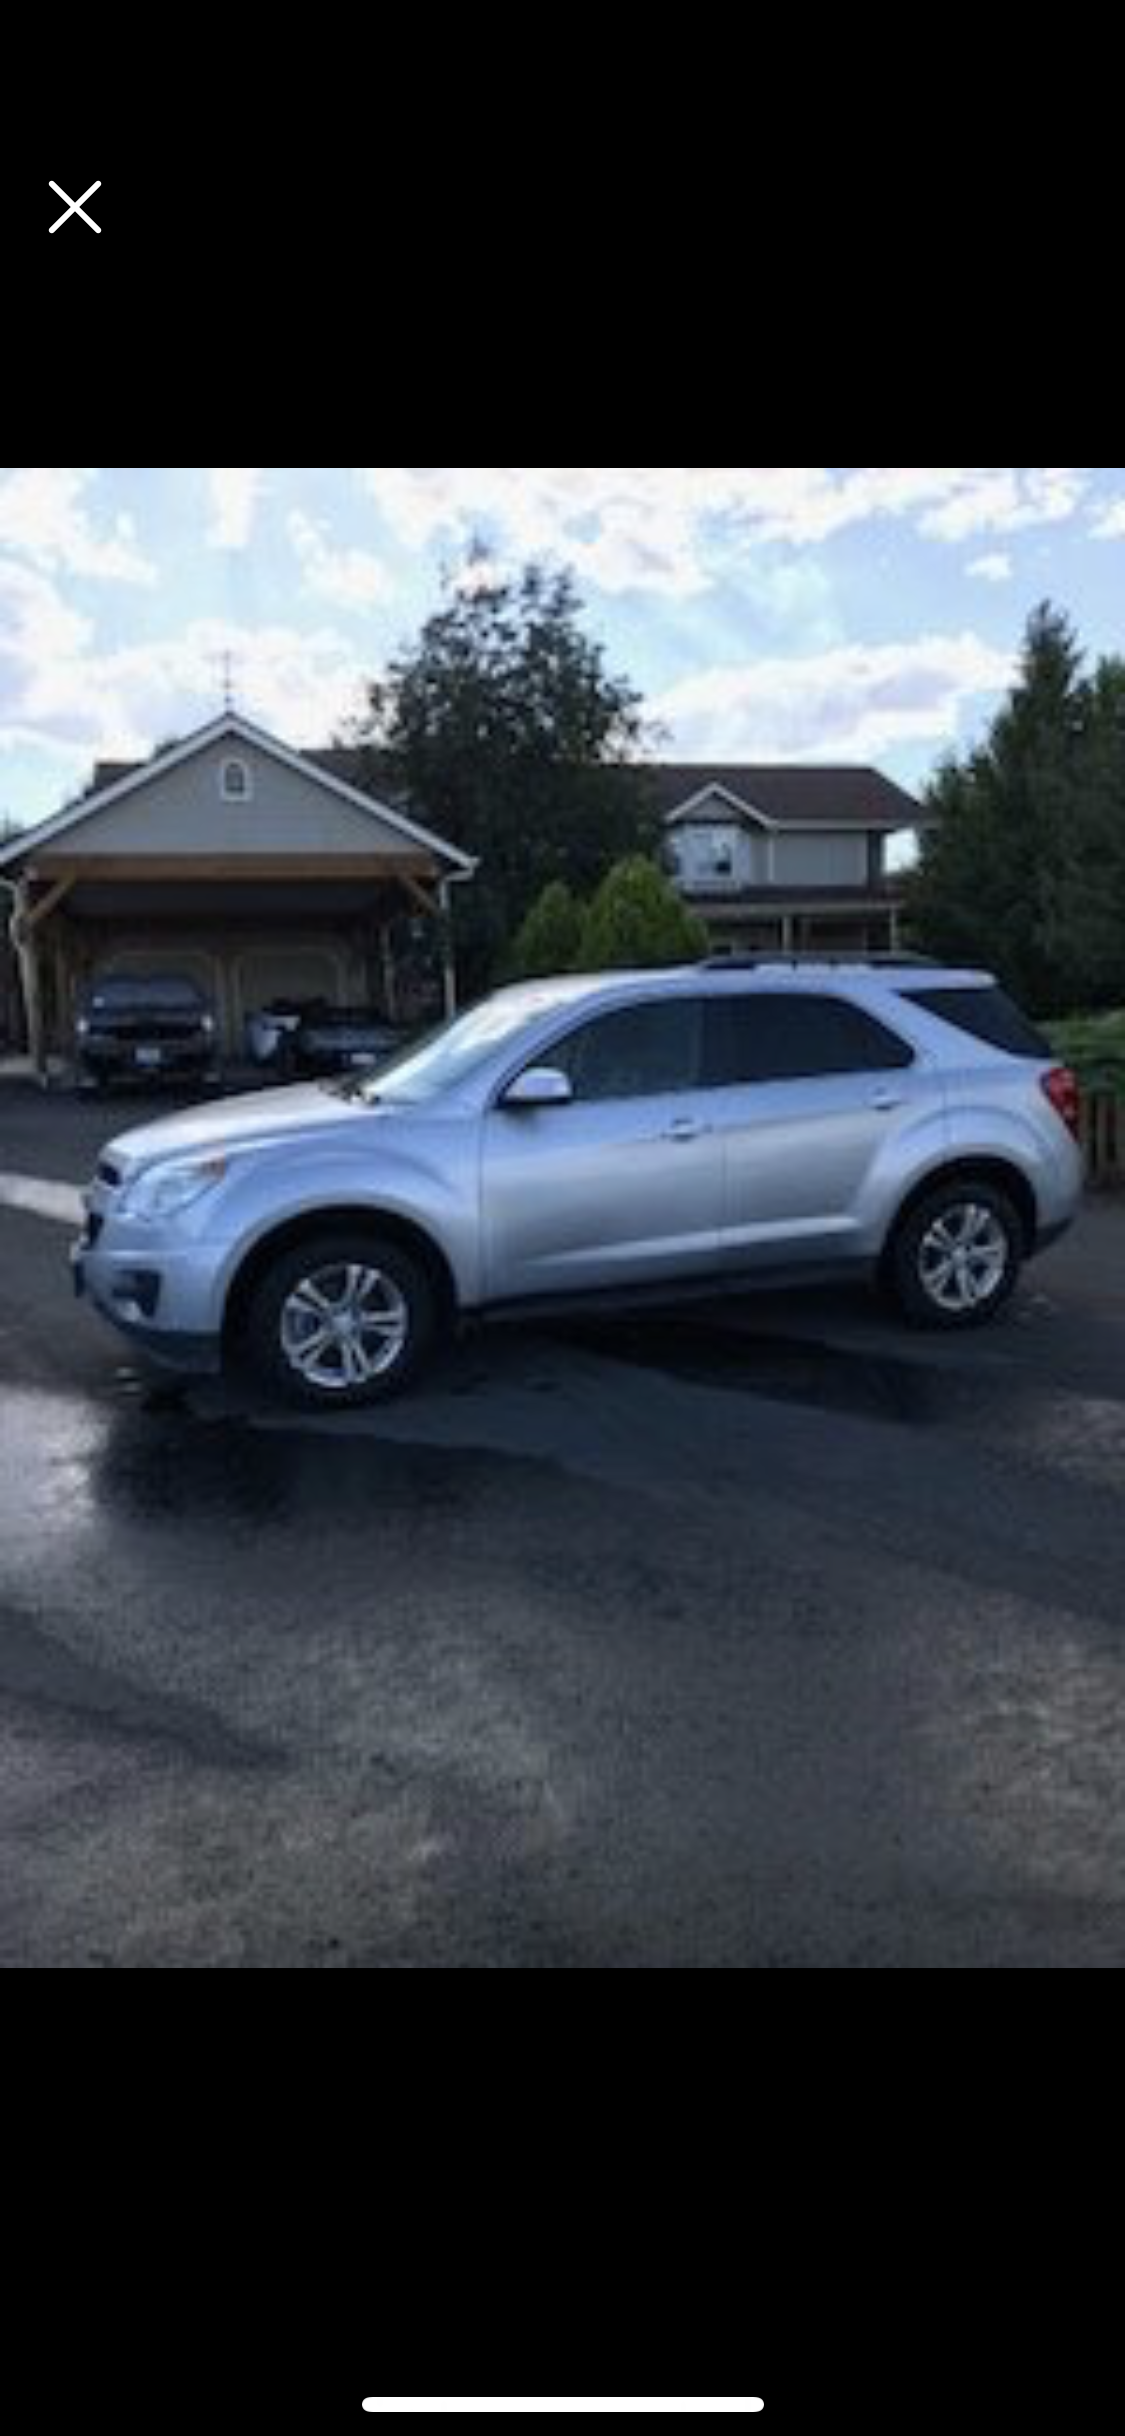 2011 Chevy Equinox LT Owner's Manual Owner's Manual